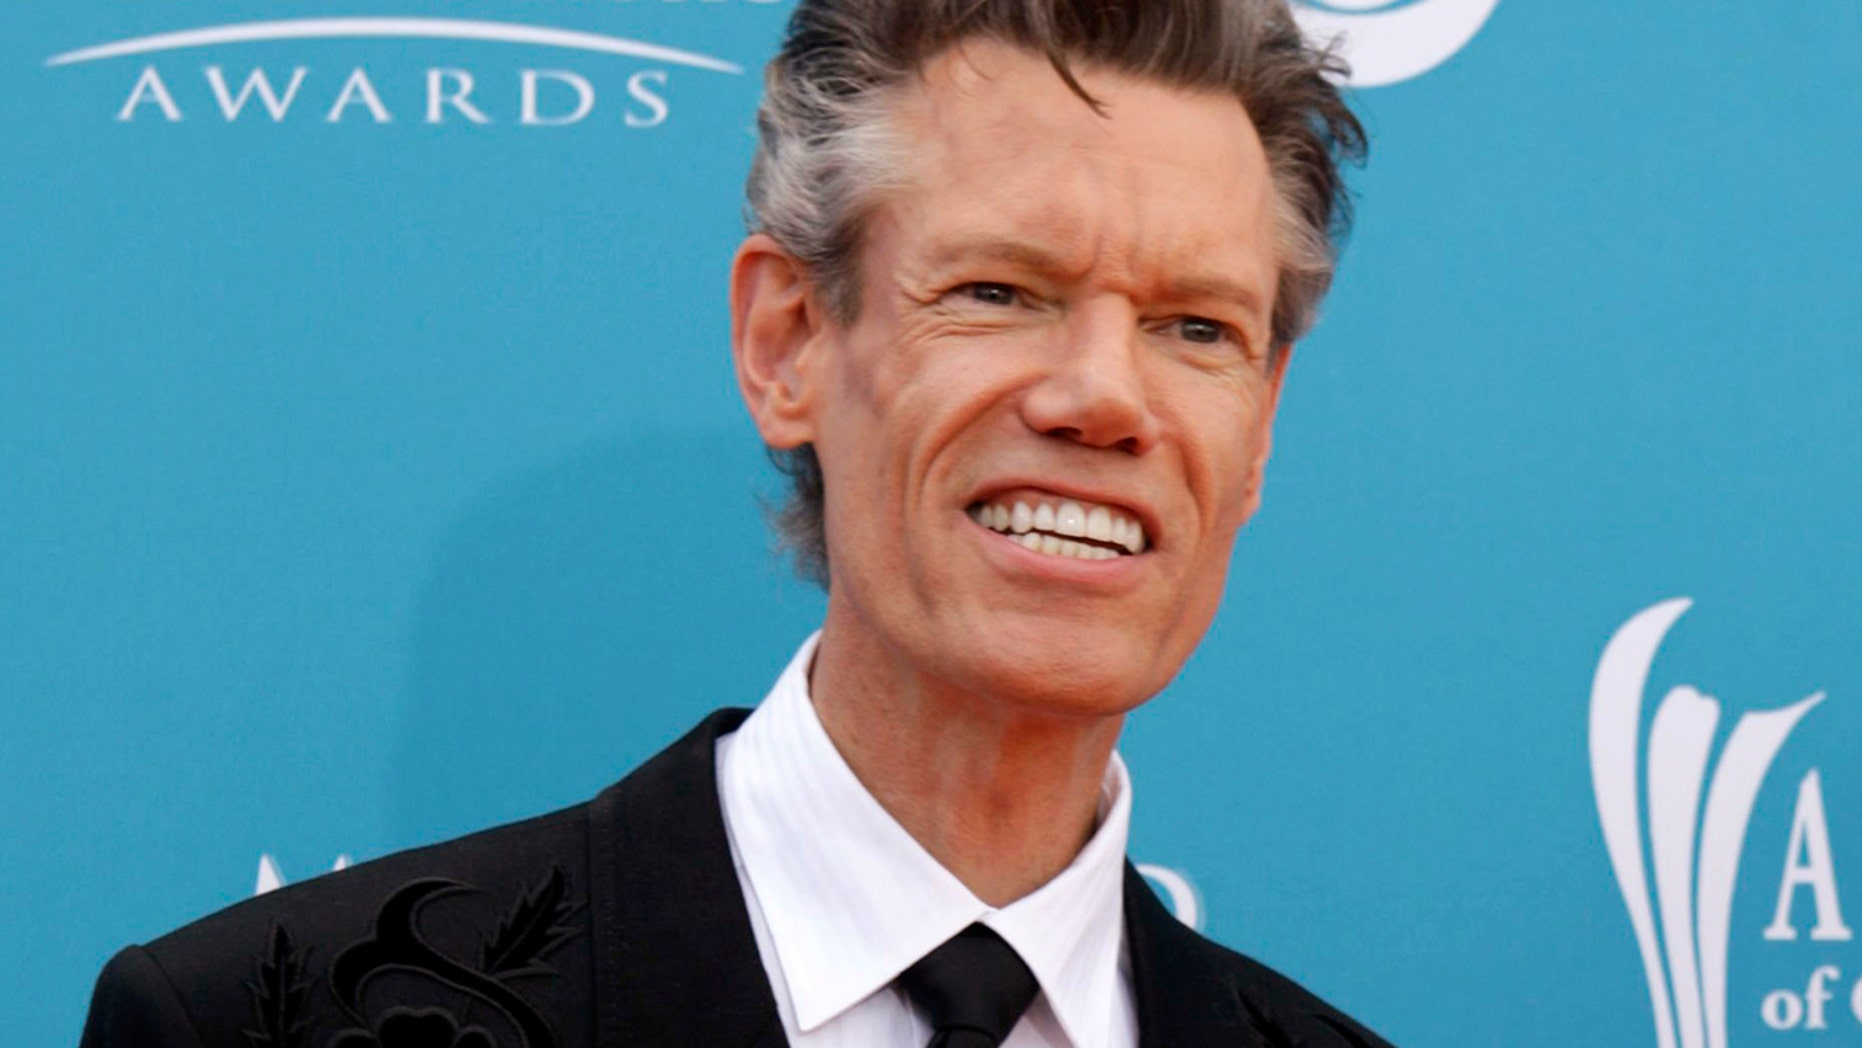 Singer Randy Travis arrives at the 45th annual Academy of Country Music Awards in Las Vegas, Nevada April 18, 2010.  REUTERS/Steve Marcus (UNITED STATES - Tags: ENTERTAINMENT PROFILE) - GM1E64J0HFS01